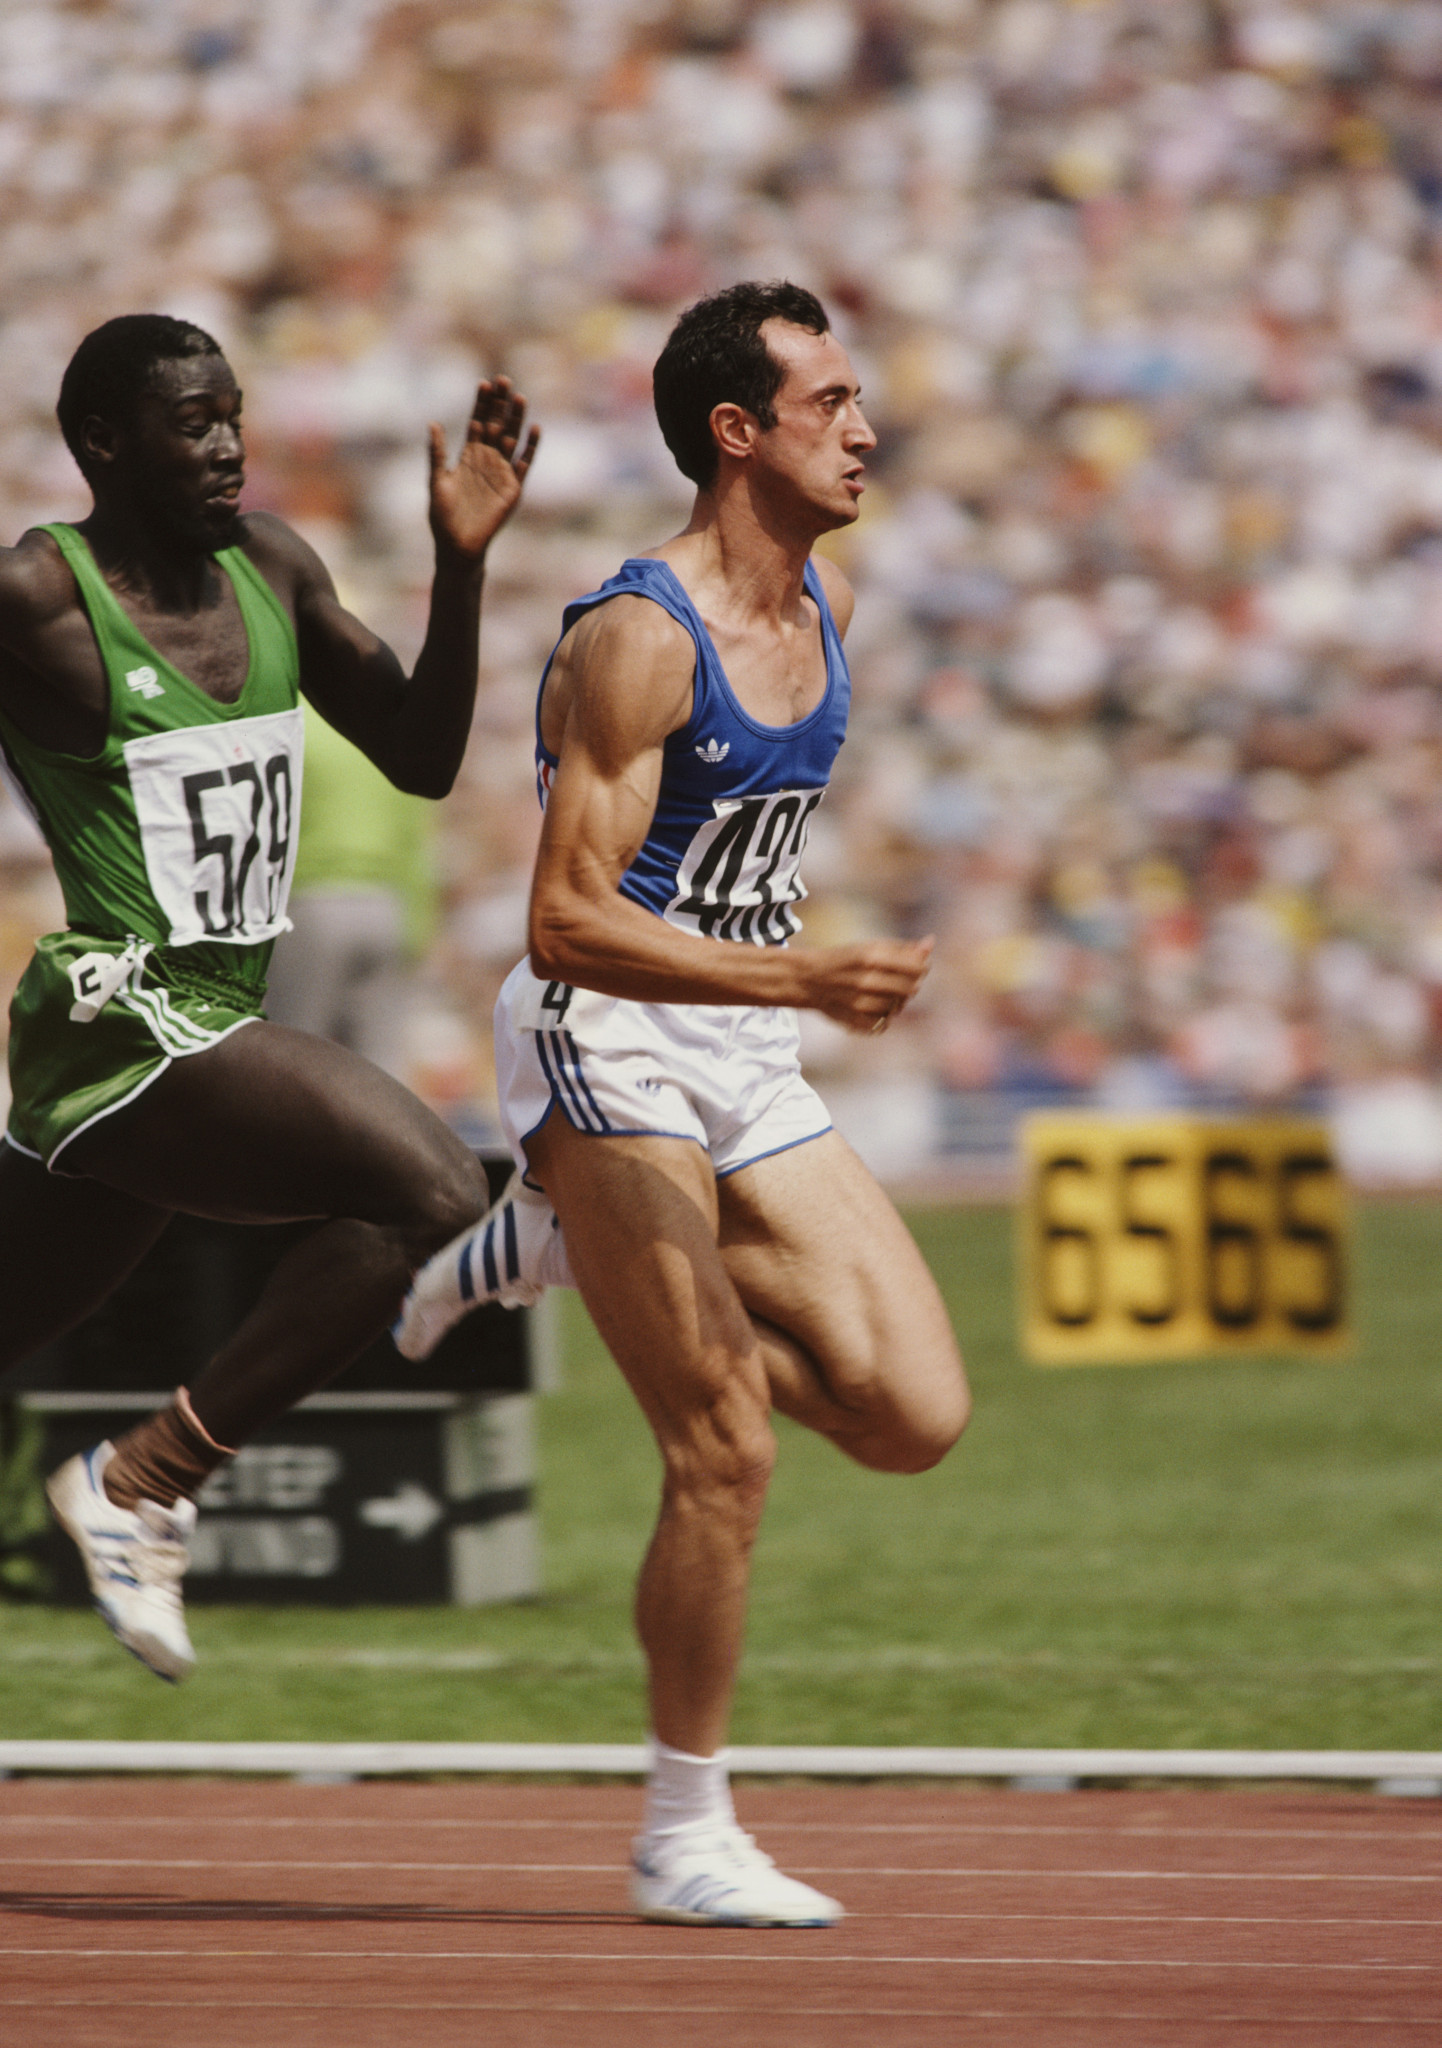 Italy's Pietro Mennea running at the 1980 Moscow Olympics, where he won gold over 200m ©Getty Images